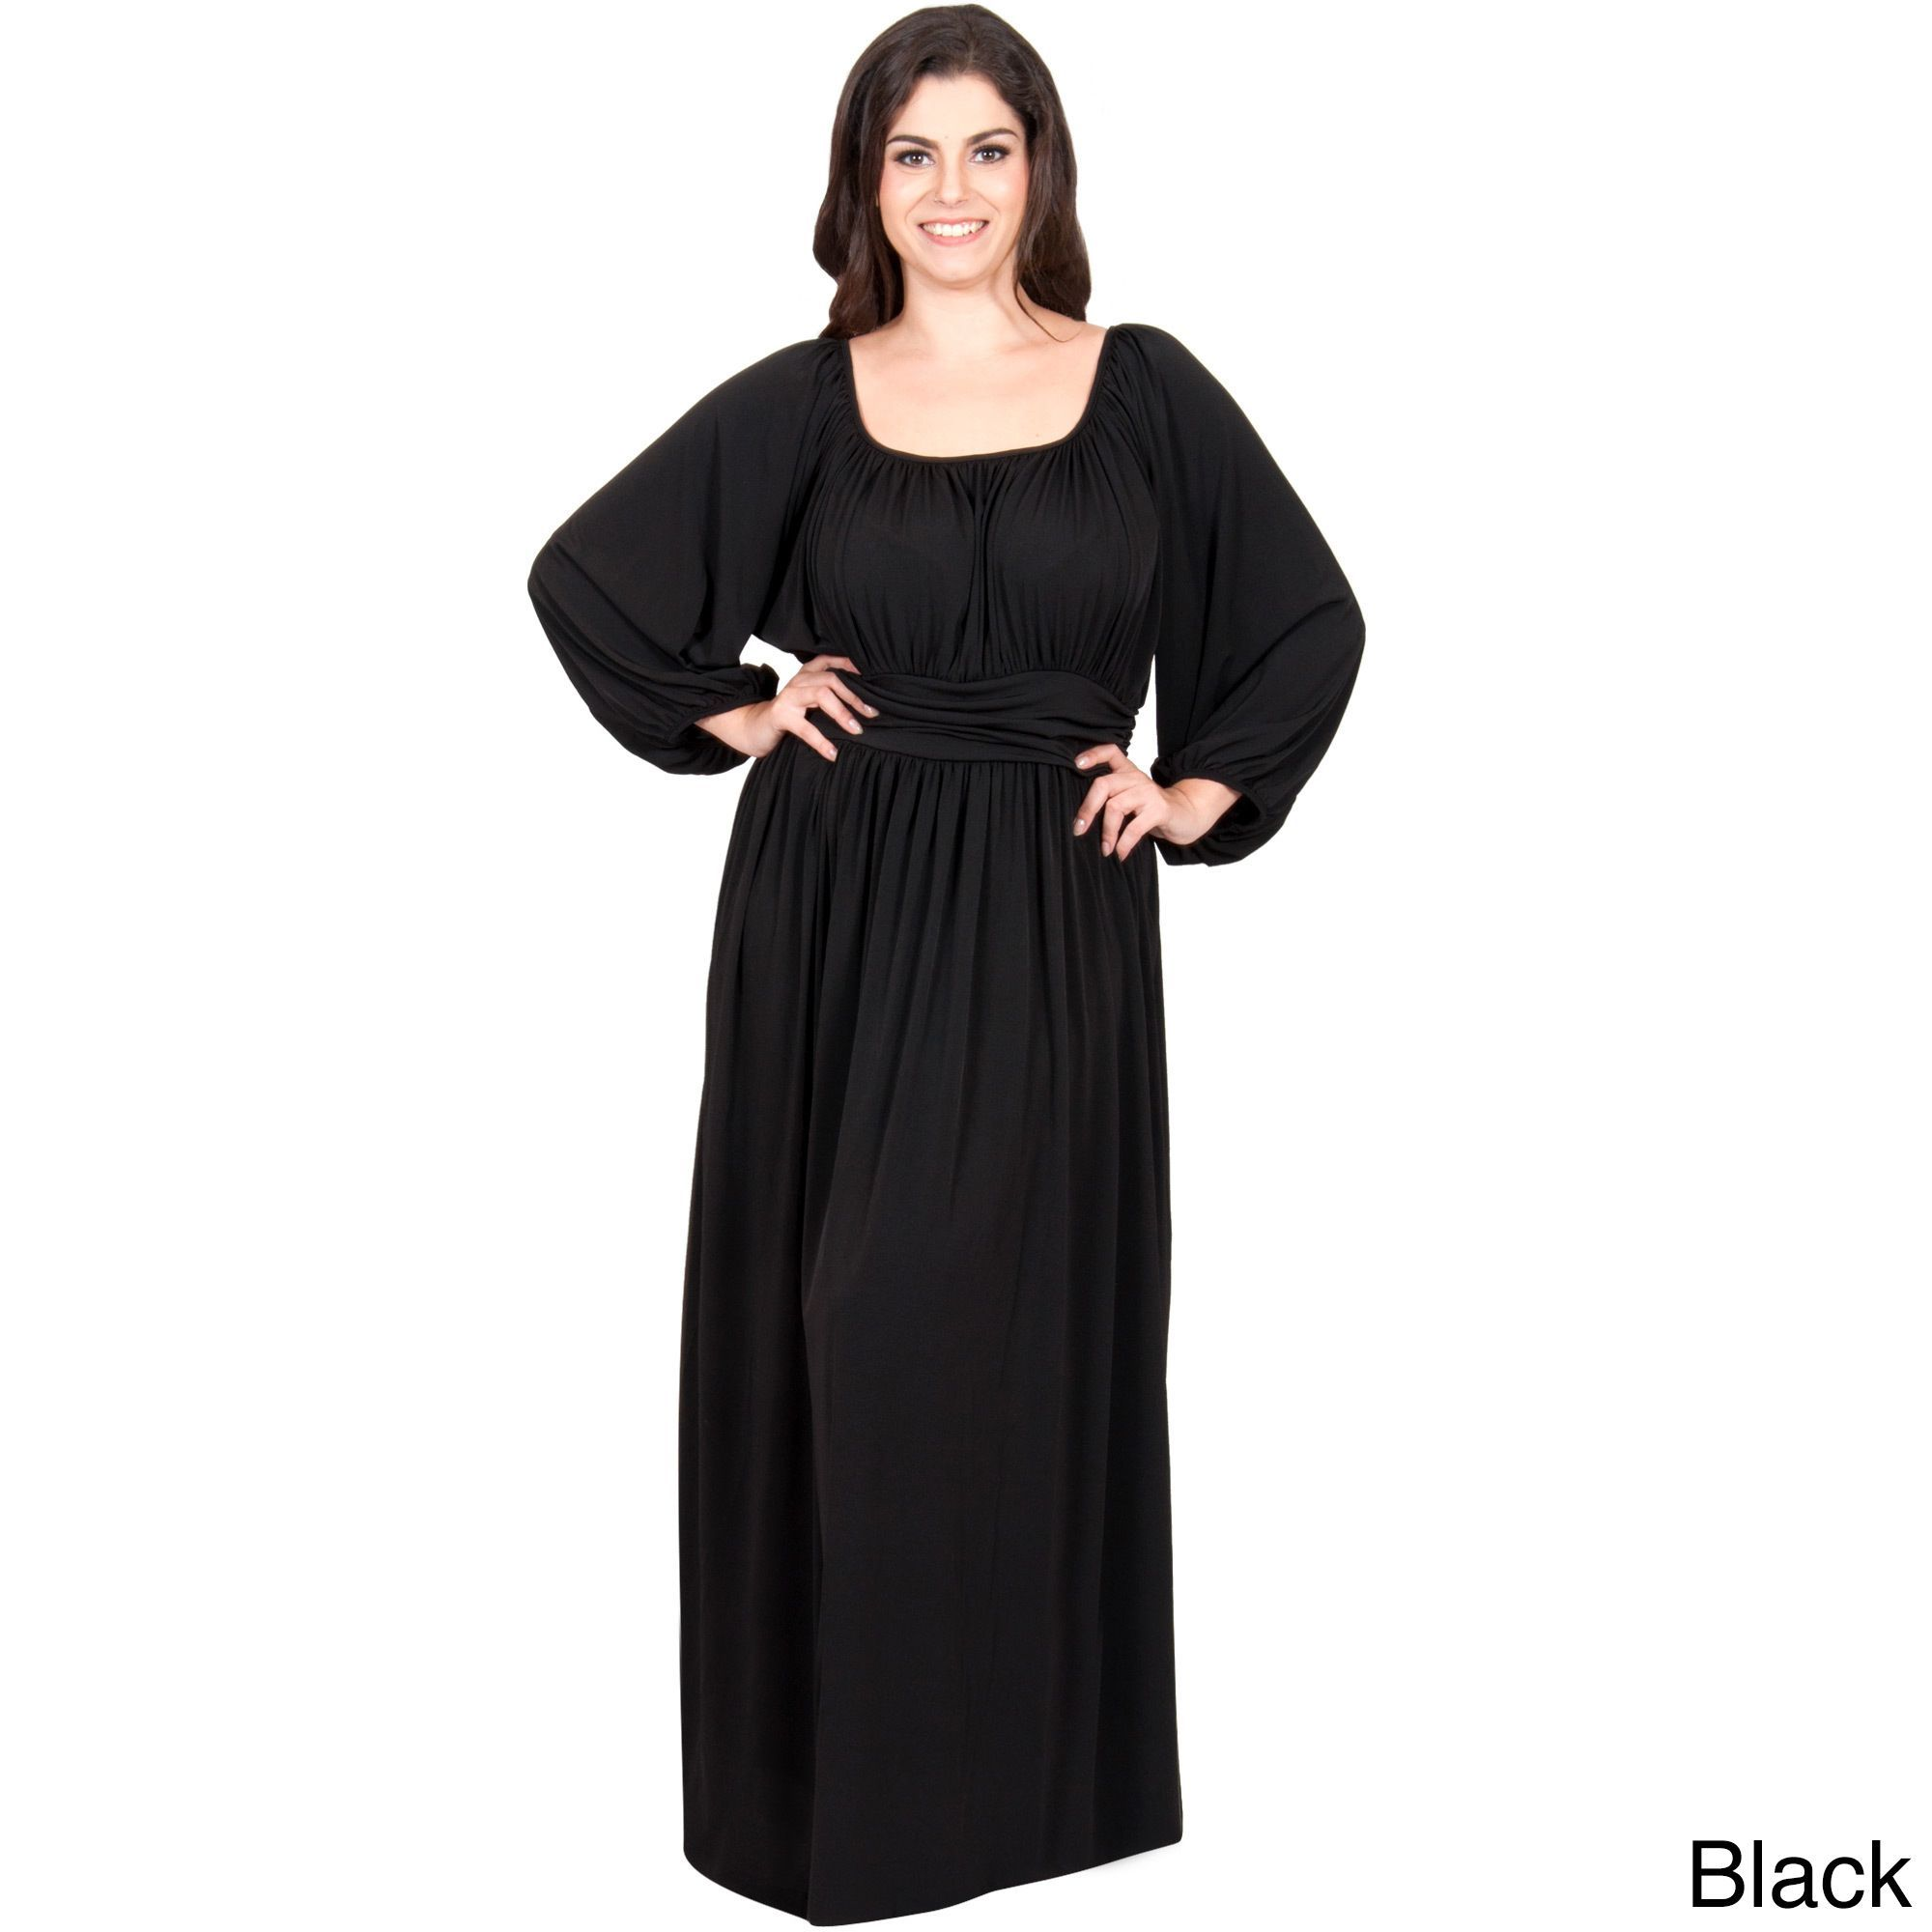 Global koh koh womenus plus size long sleeve round neckline ruched